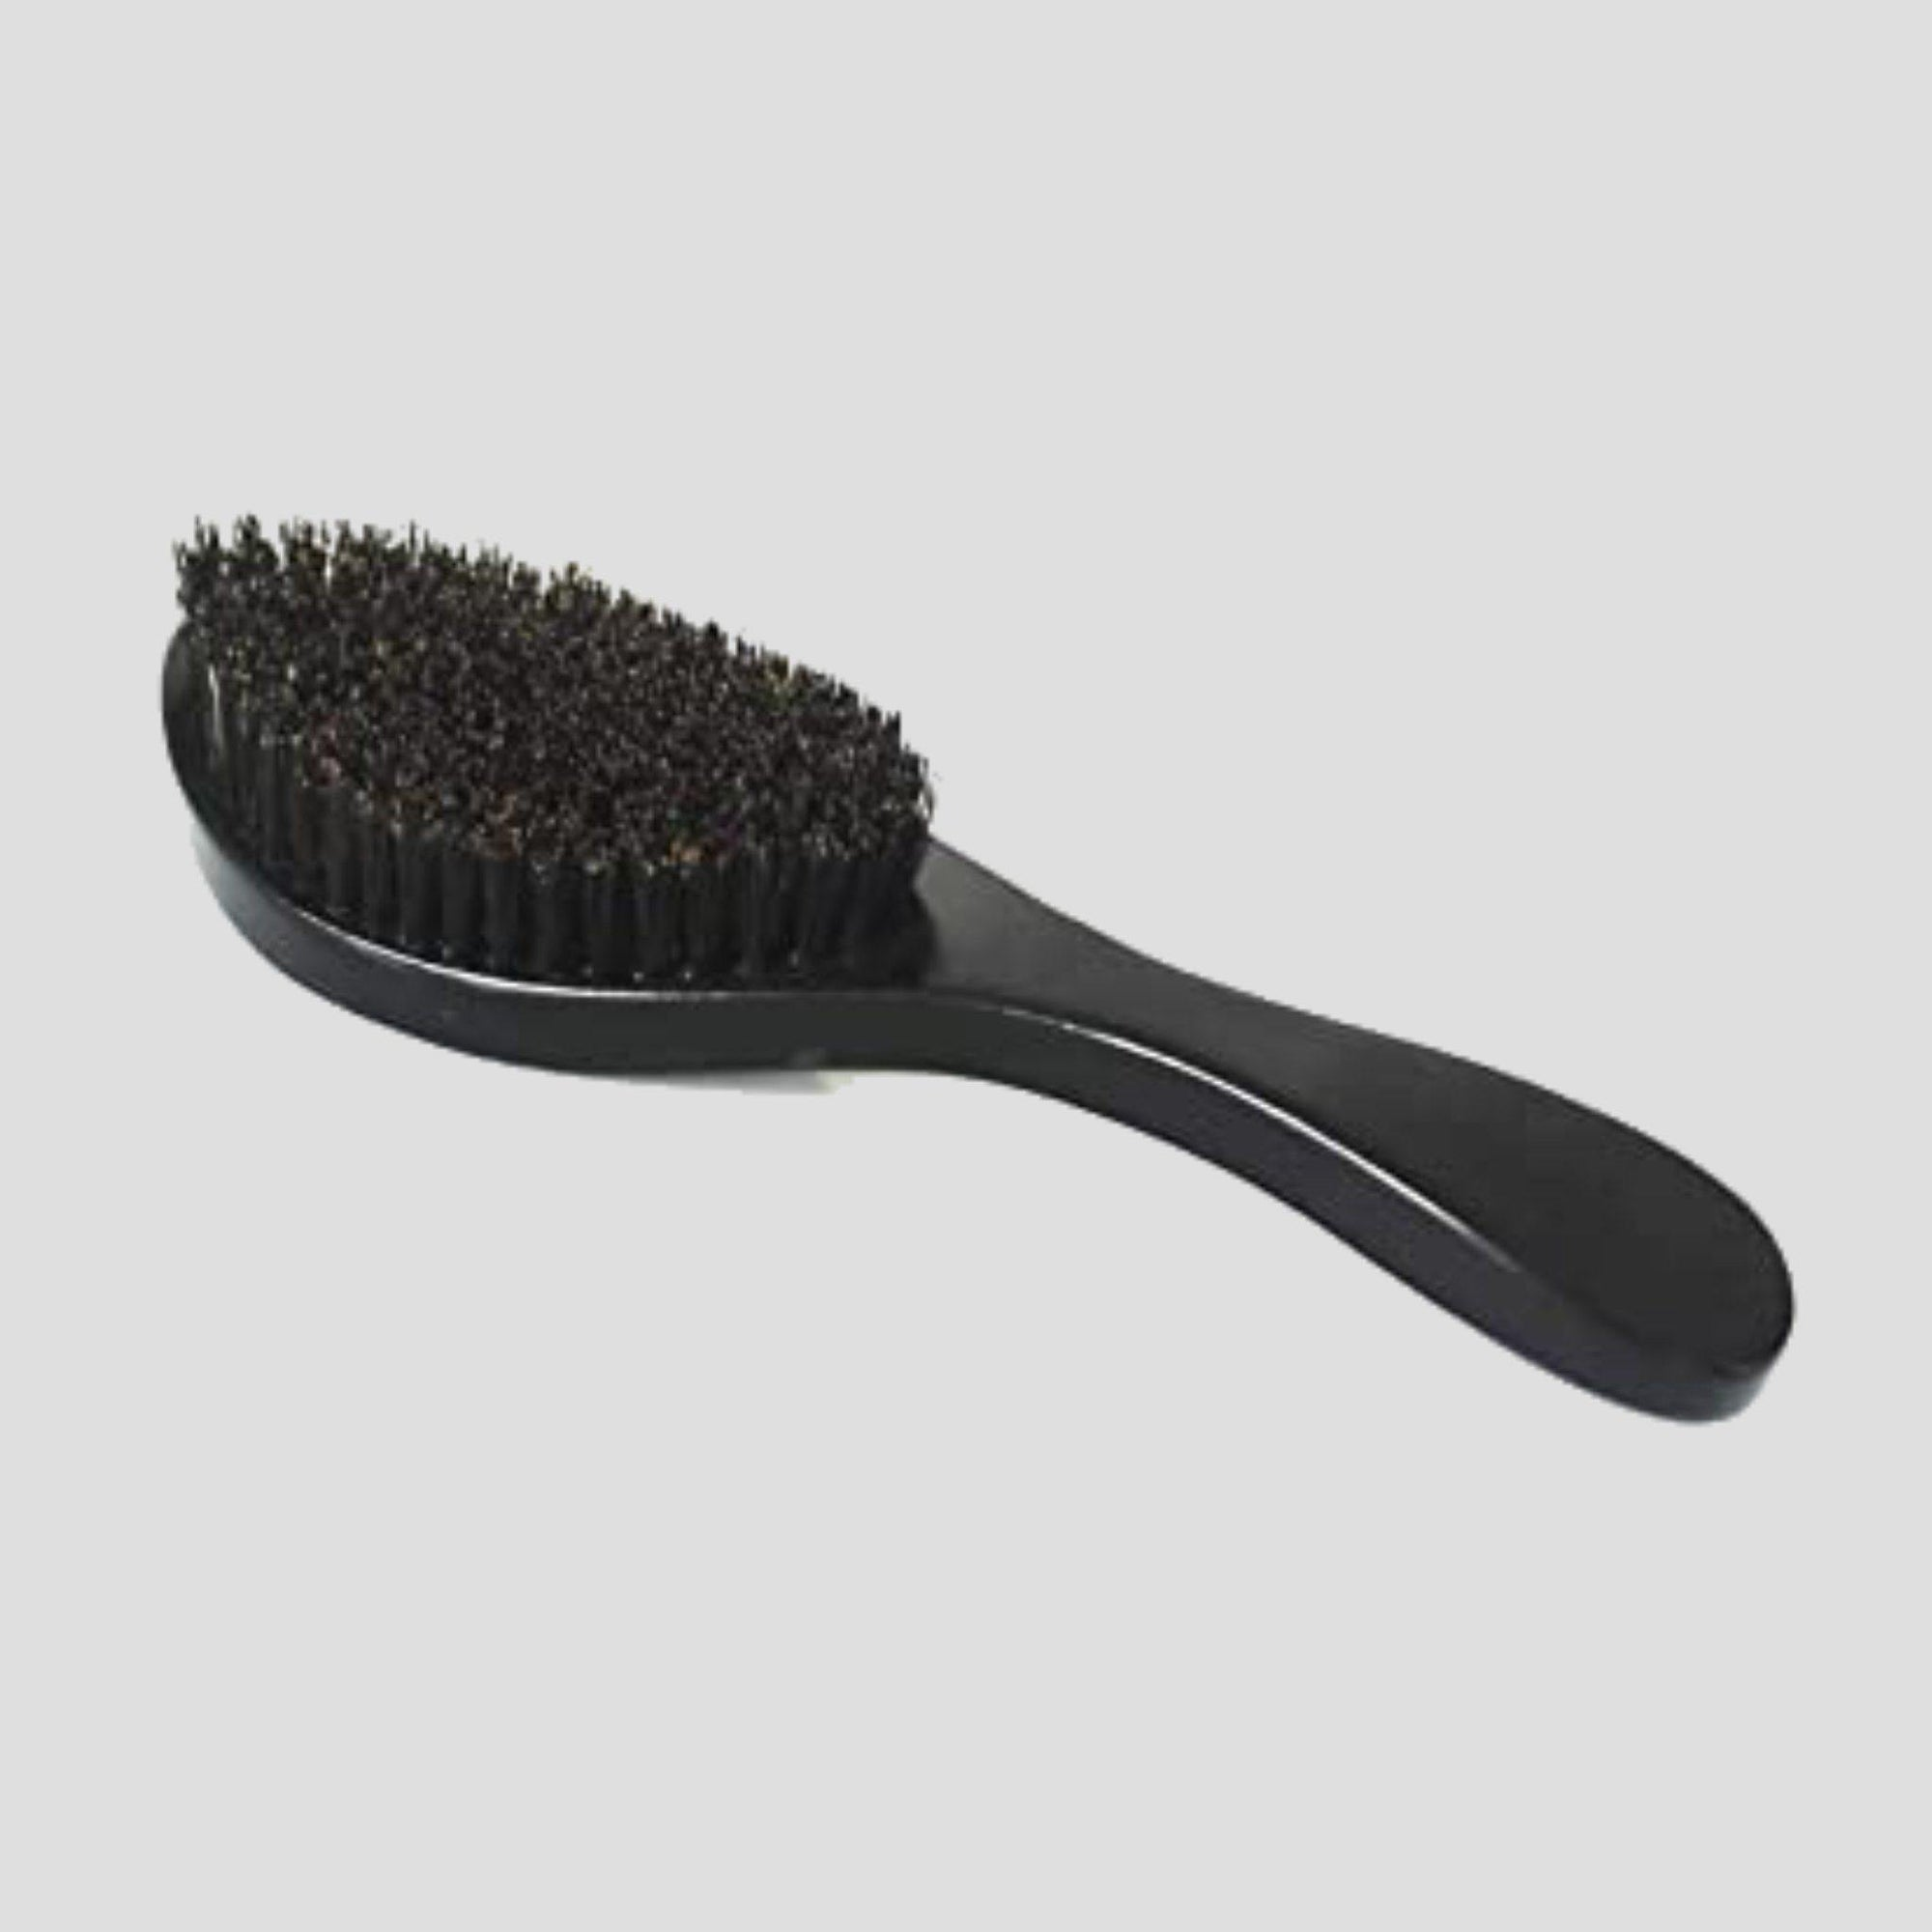 Blakk Long Wave Brush for 360 Waves - Made with 100% Boar Bristles - Durag Wave